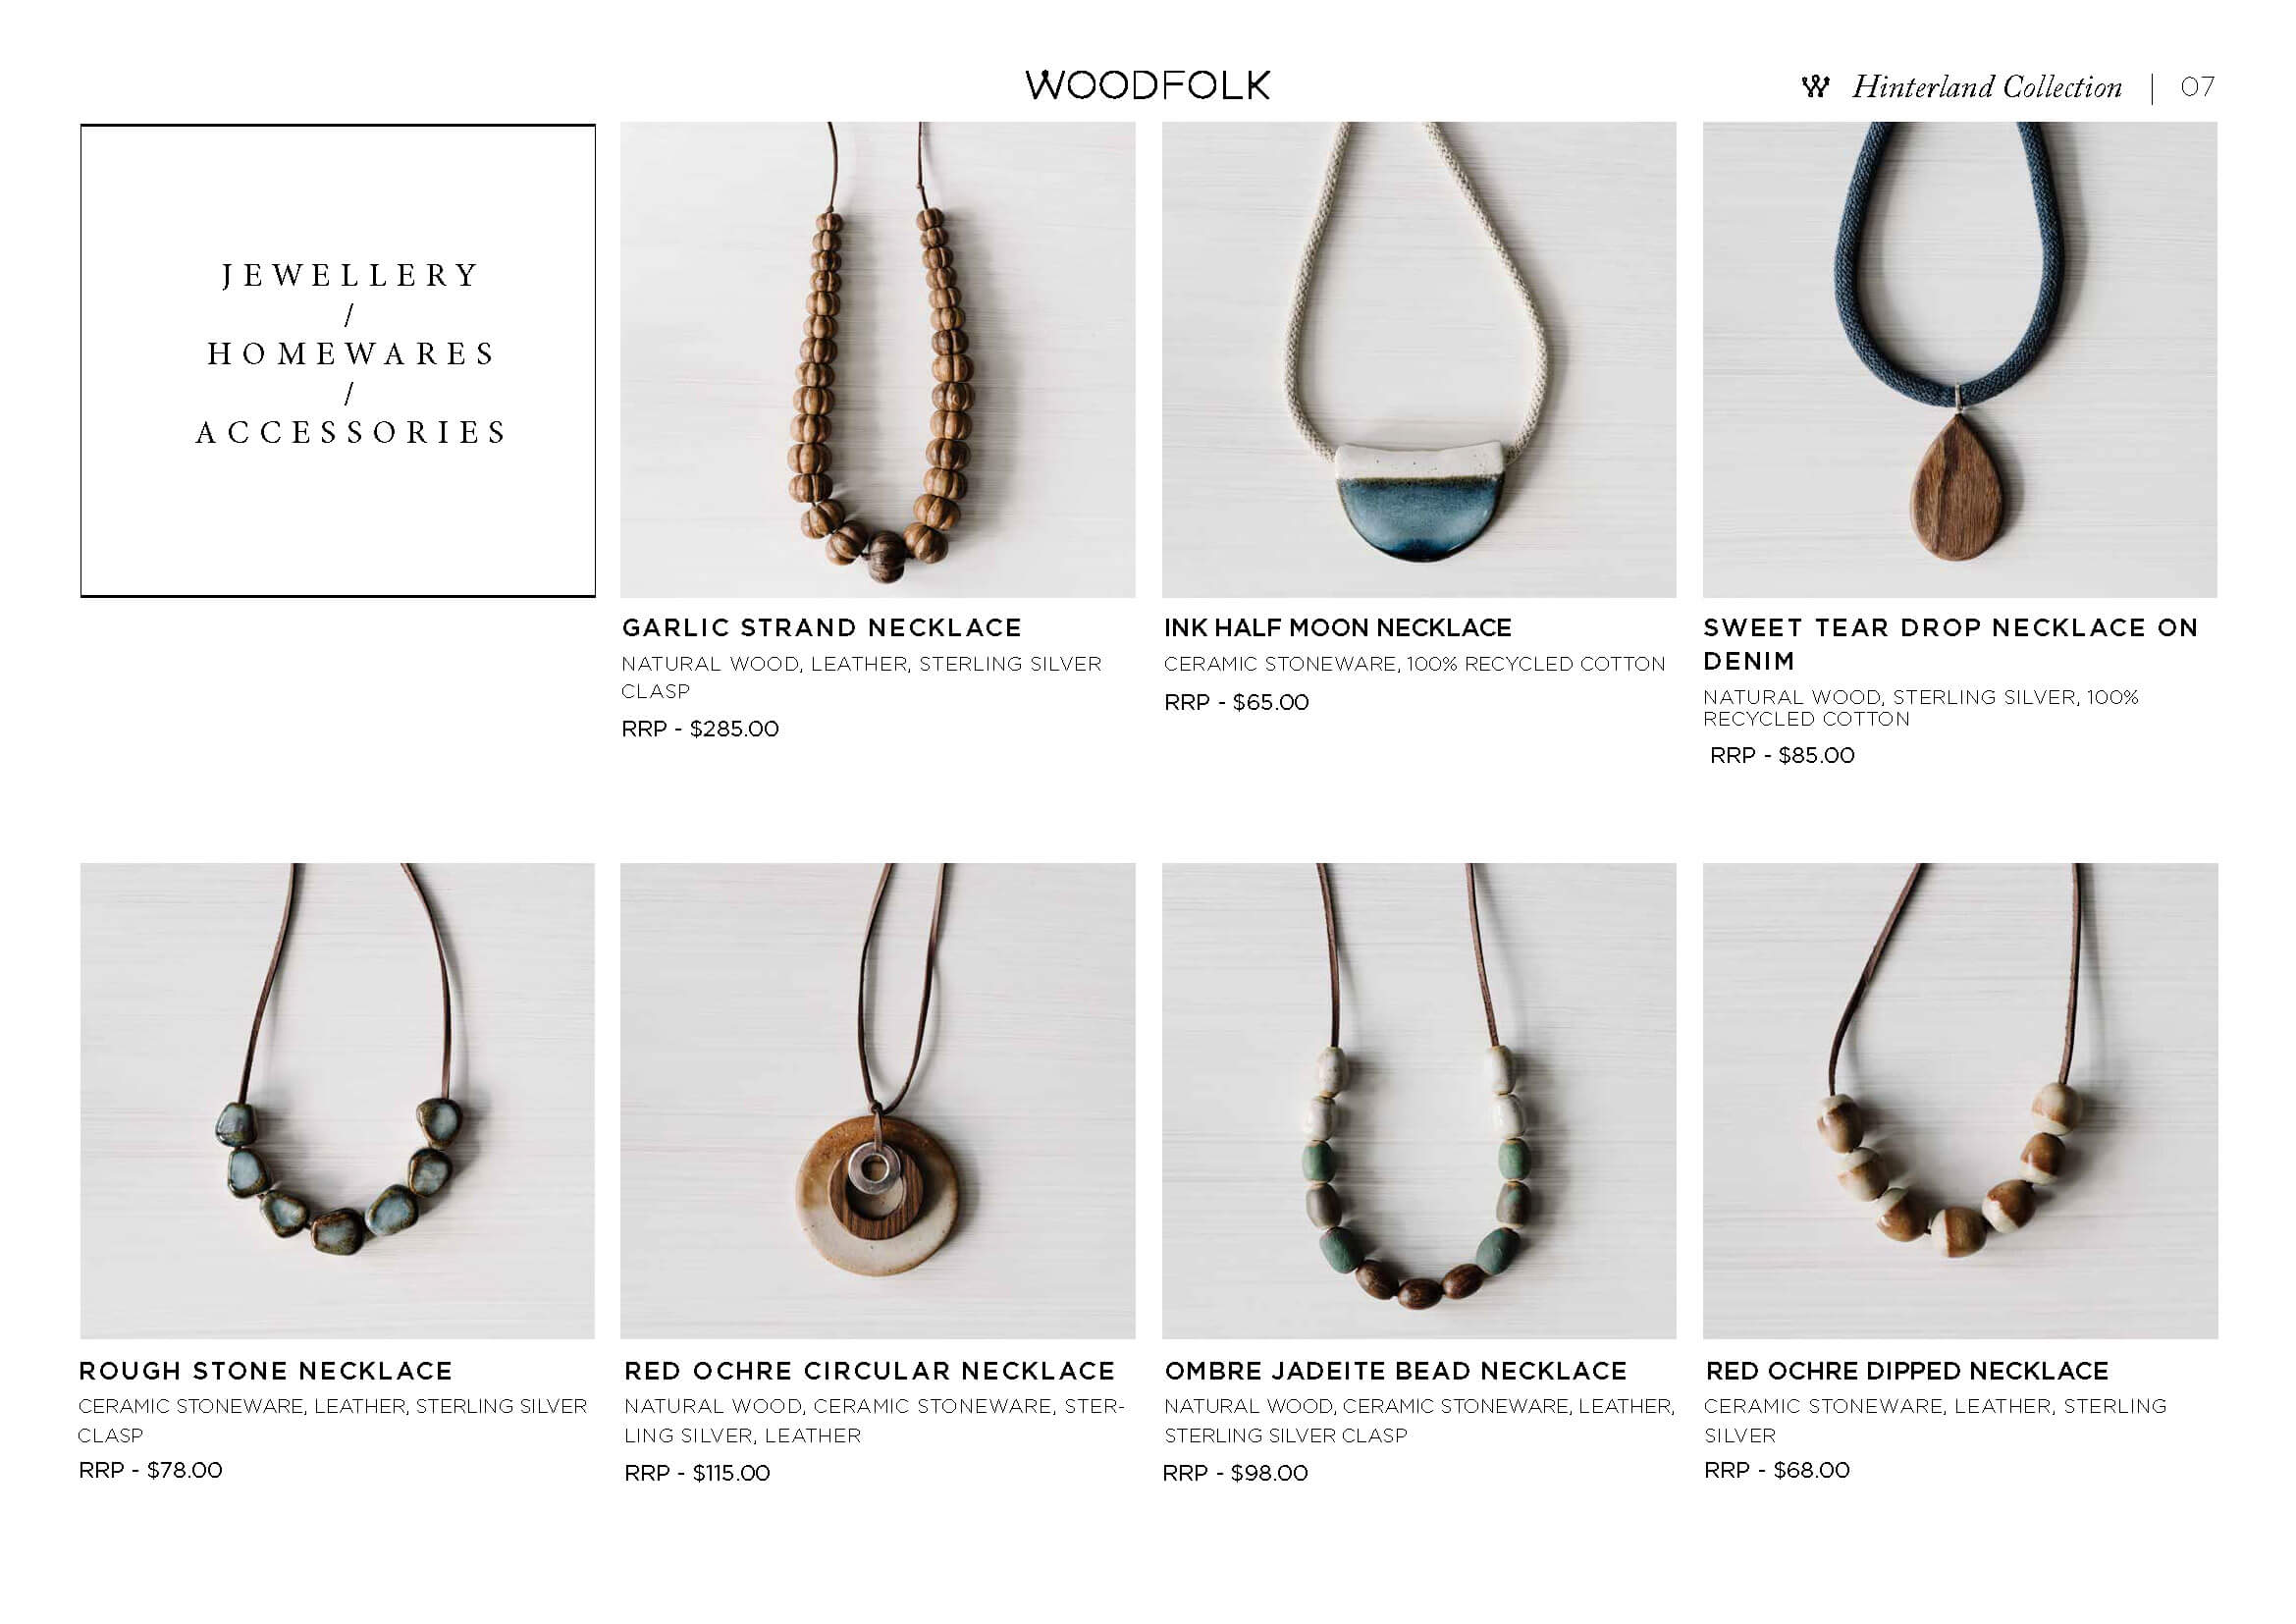 Woodfolk-Catalogue-2019_Web_Public_Page_08.jpg